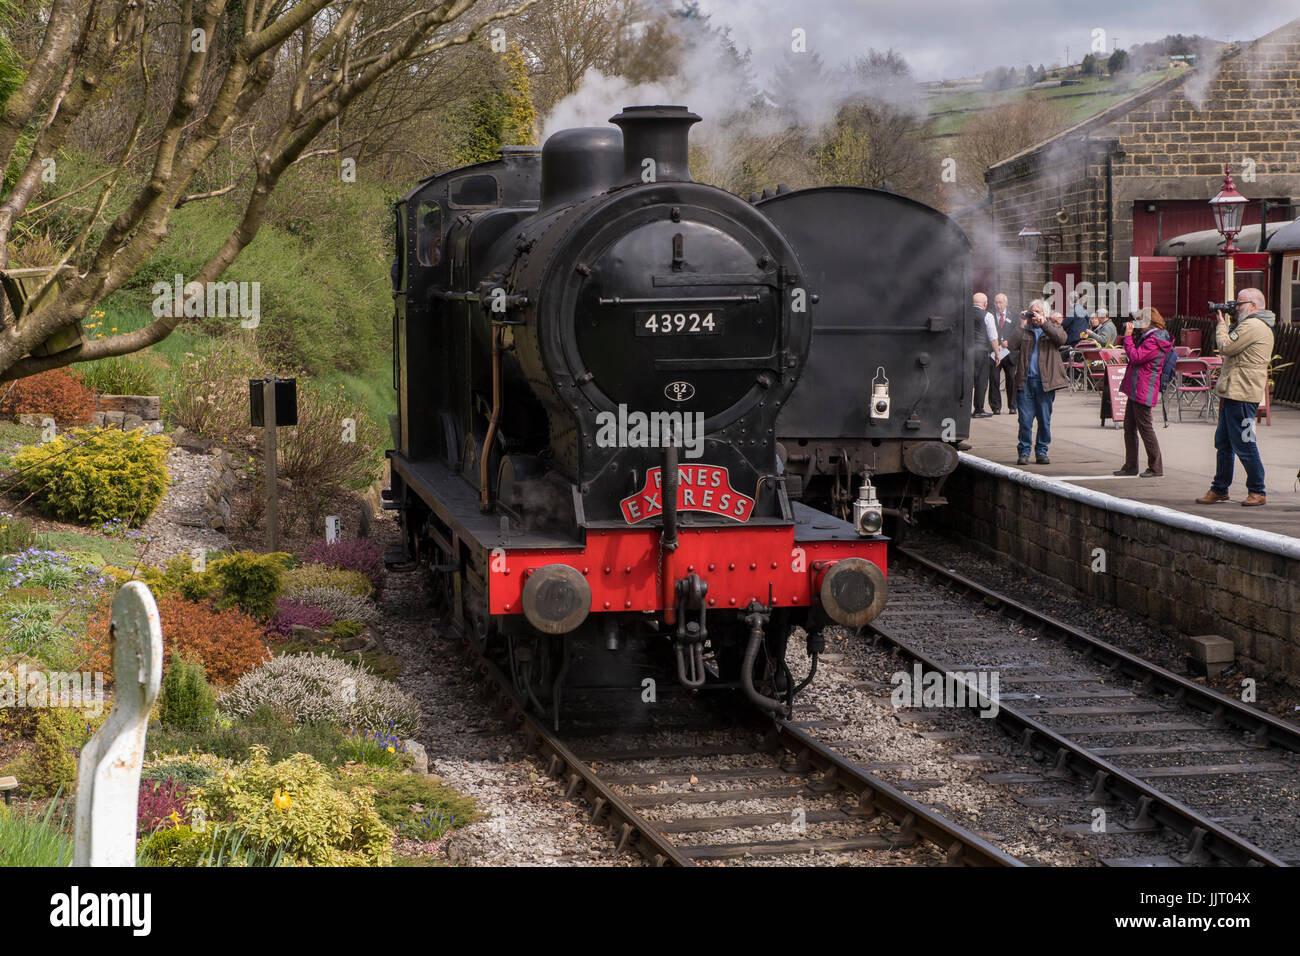 People view steam locomotive BR (Midland Railway) 4F 0-6-0 43924 pulling into station, puffing smoke - Keighley - Stock Image